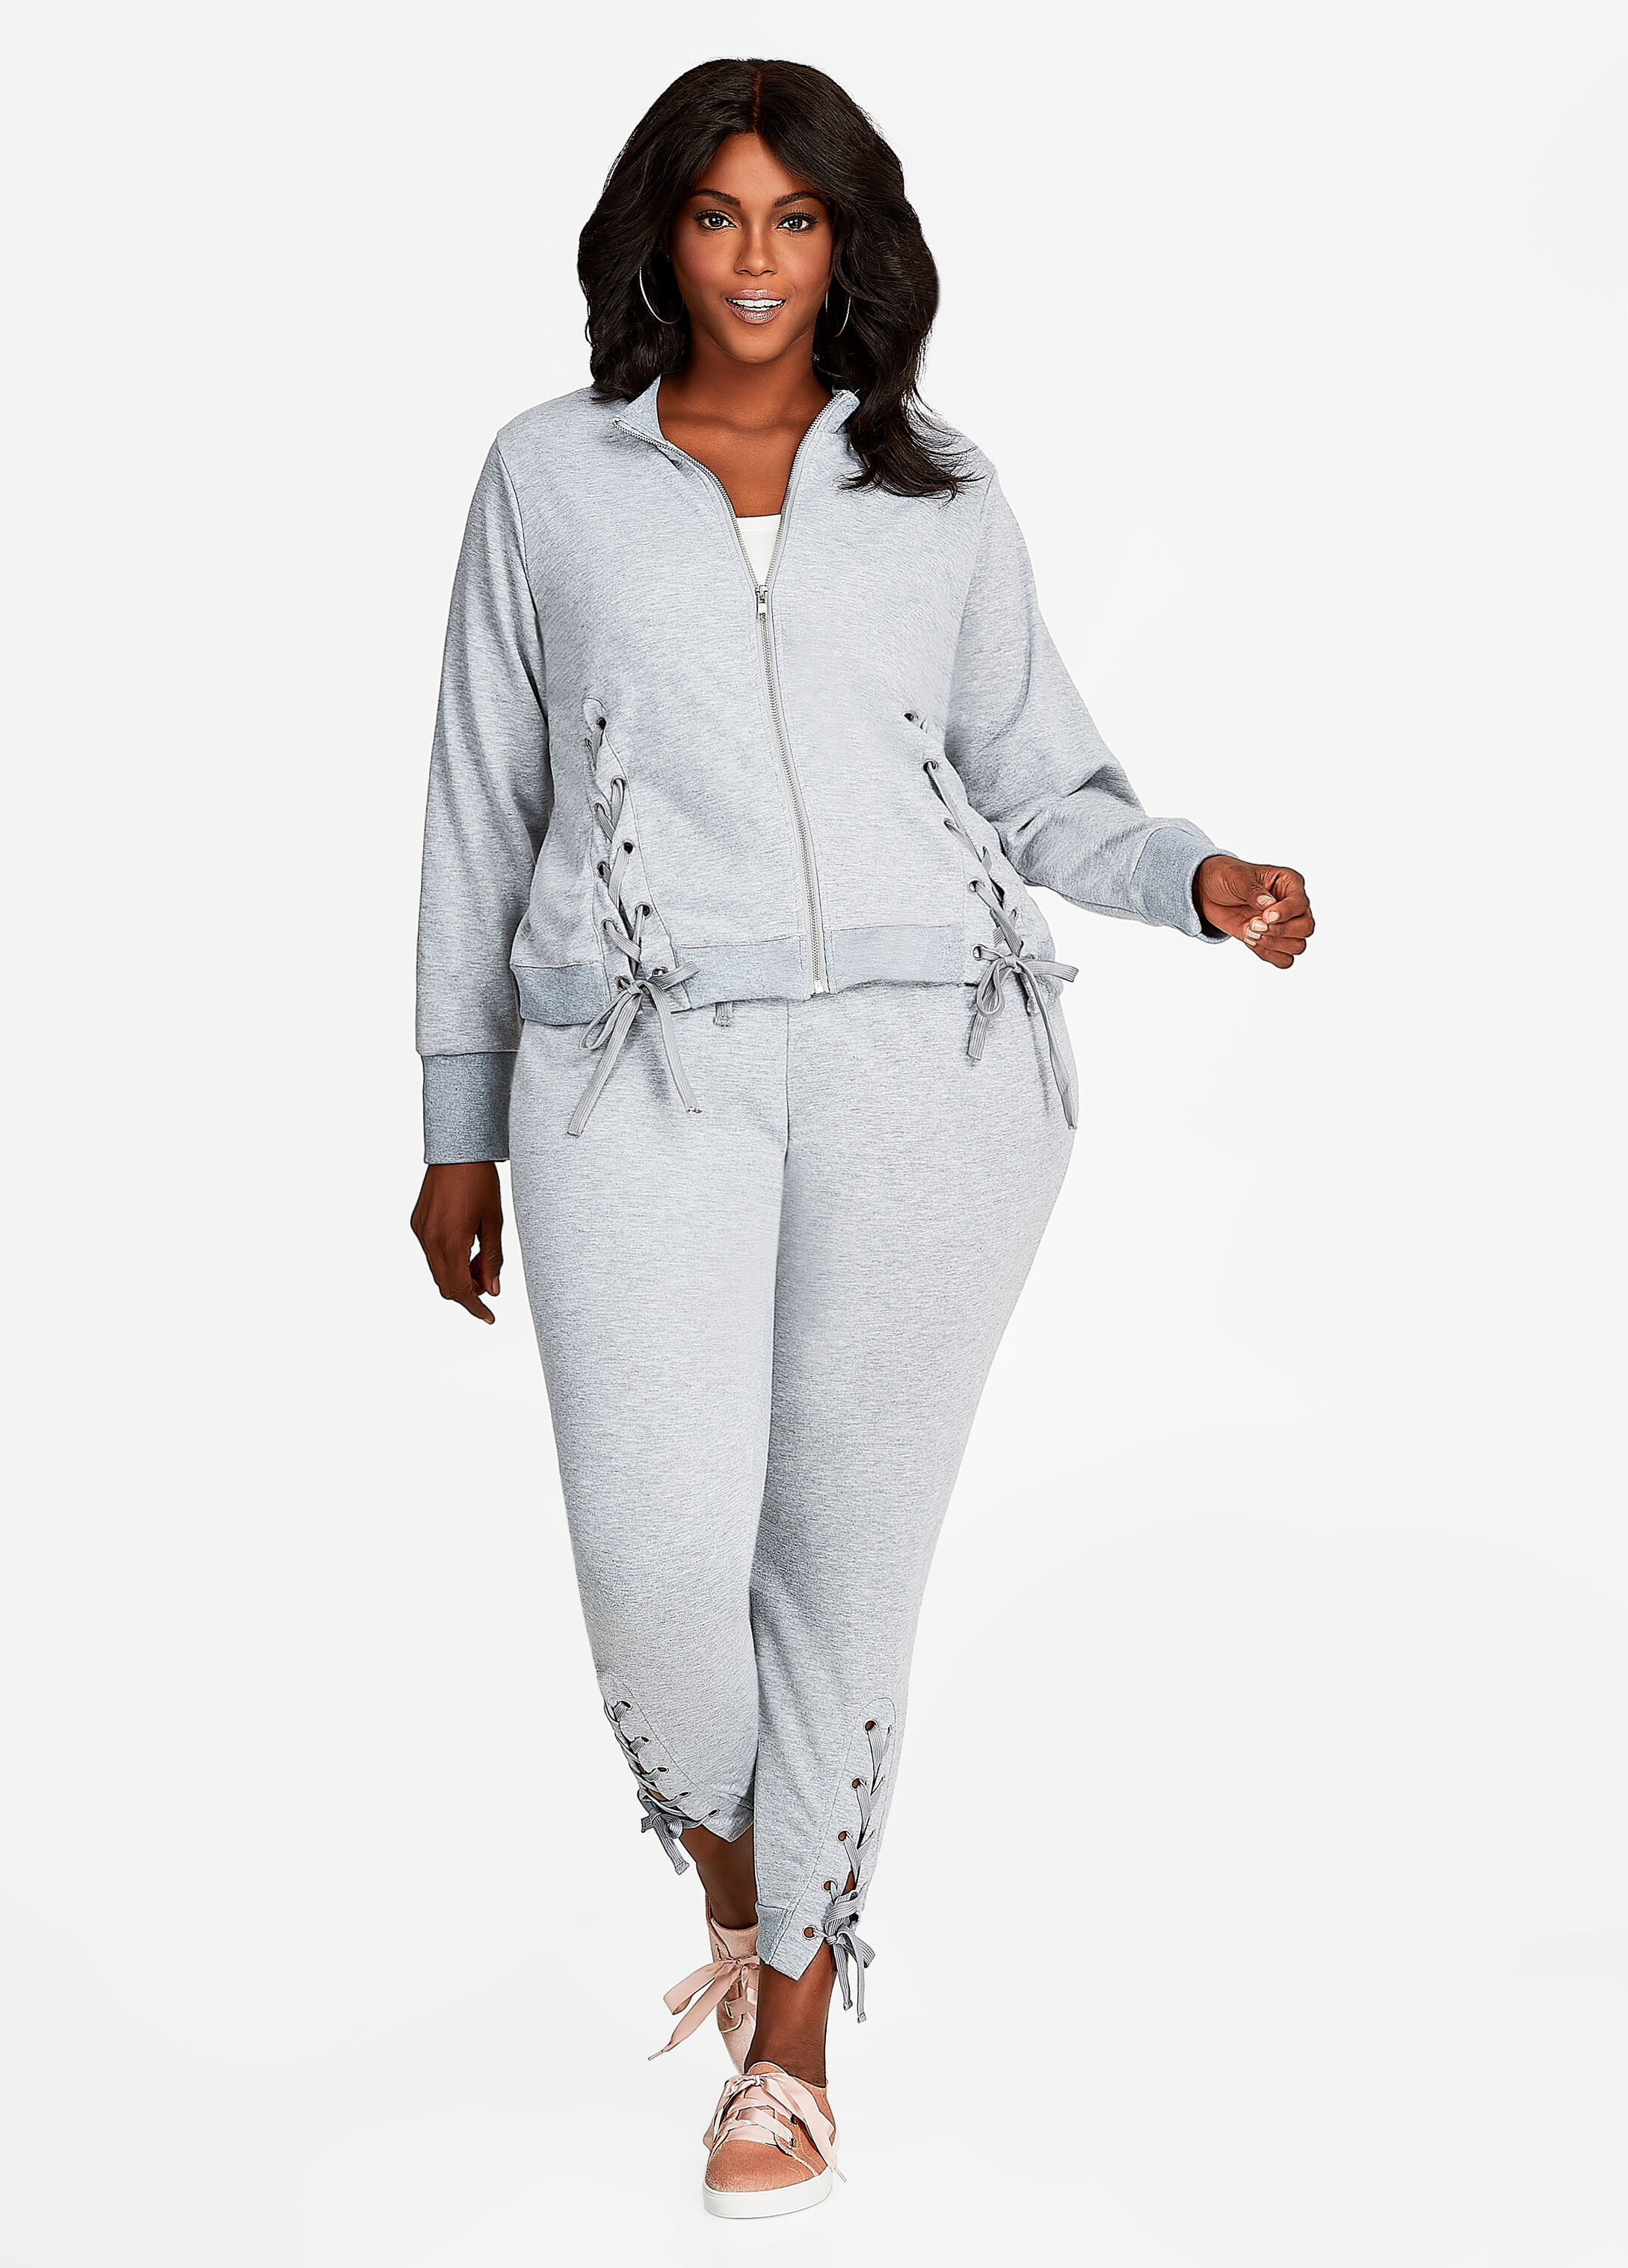 Plus Size Outfits - Lace Up Track Jacket and Jogger Athleisure Set